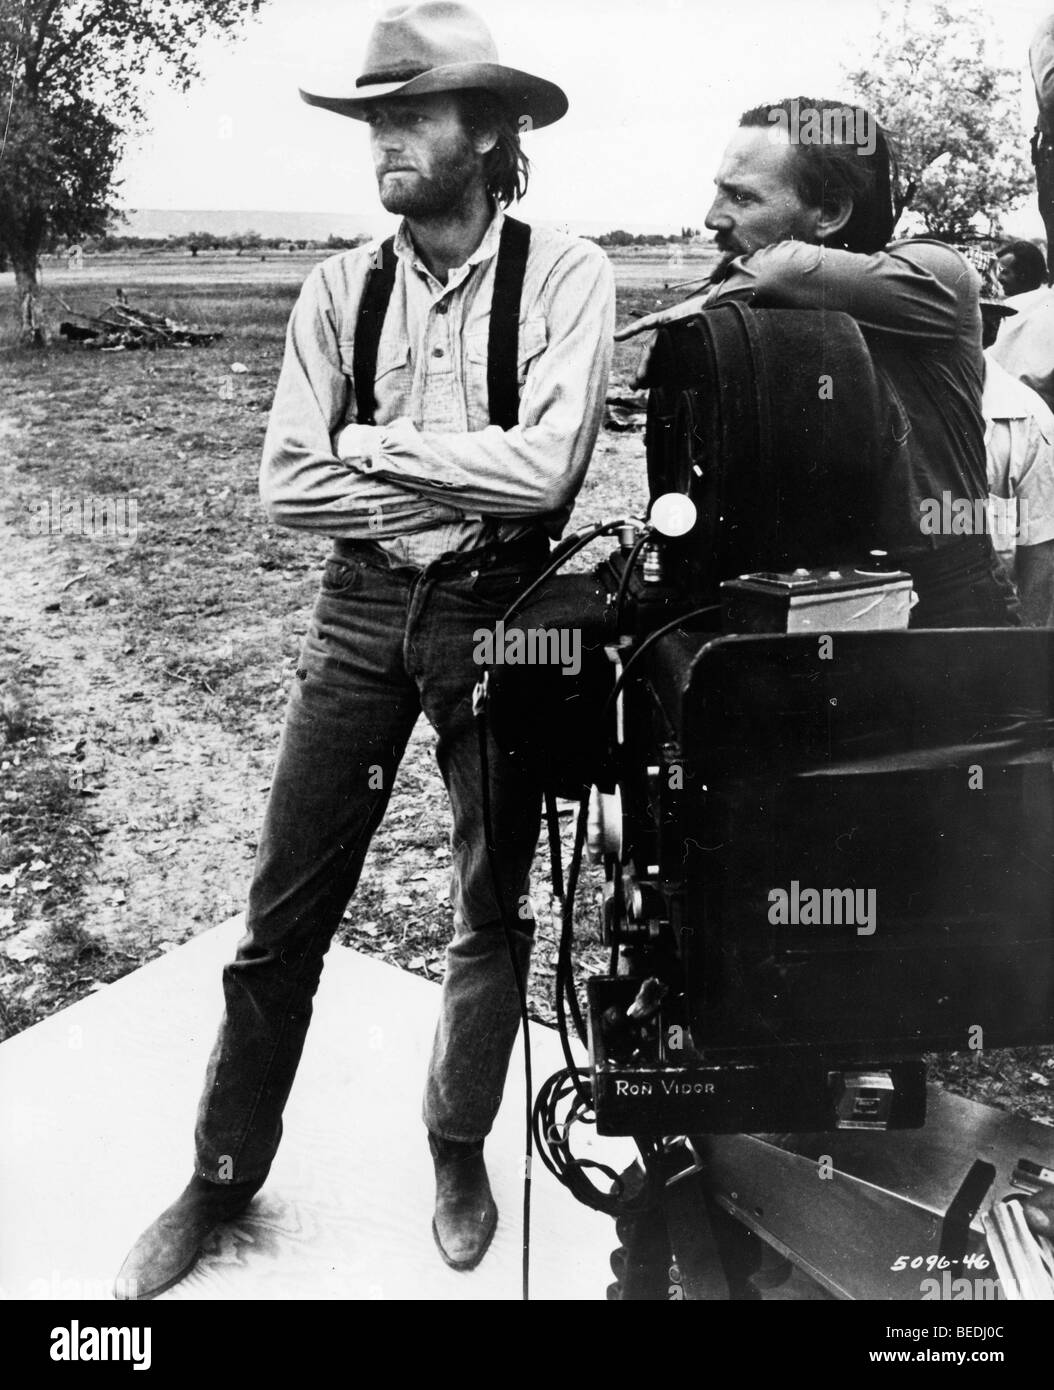 Actor Peter Fonda on set of western film - Stock Image